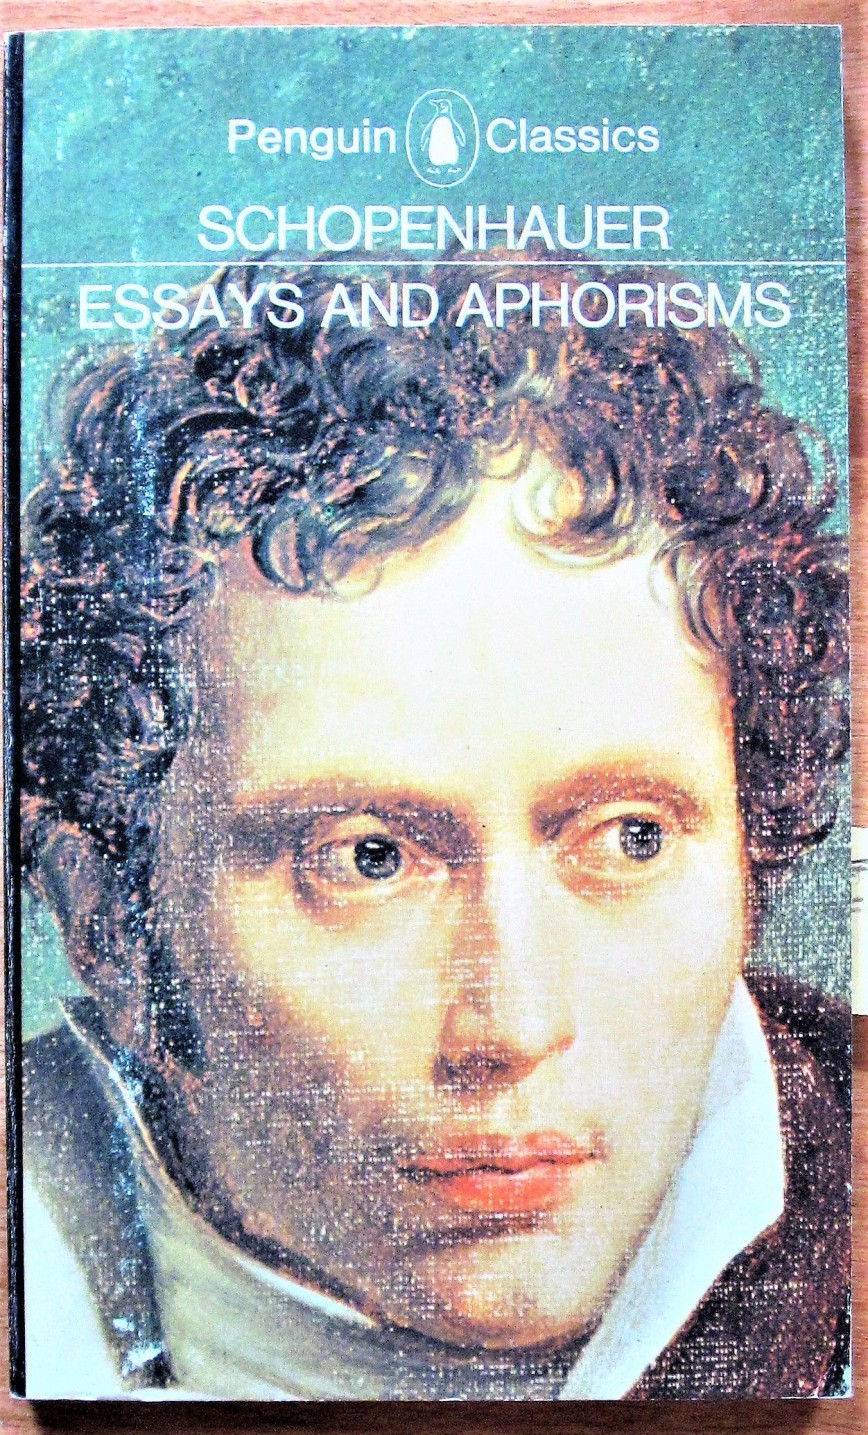 003 Essays And Aphorisms X Essay Frightening By Arthur Schopenhauer Sparknotes